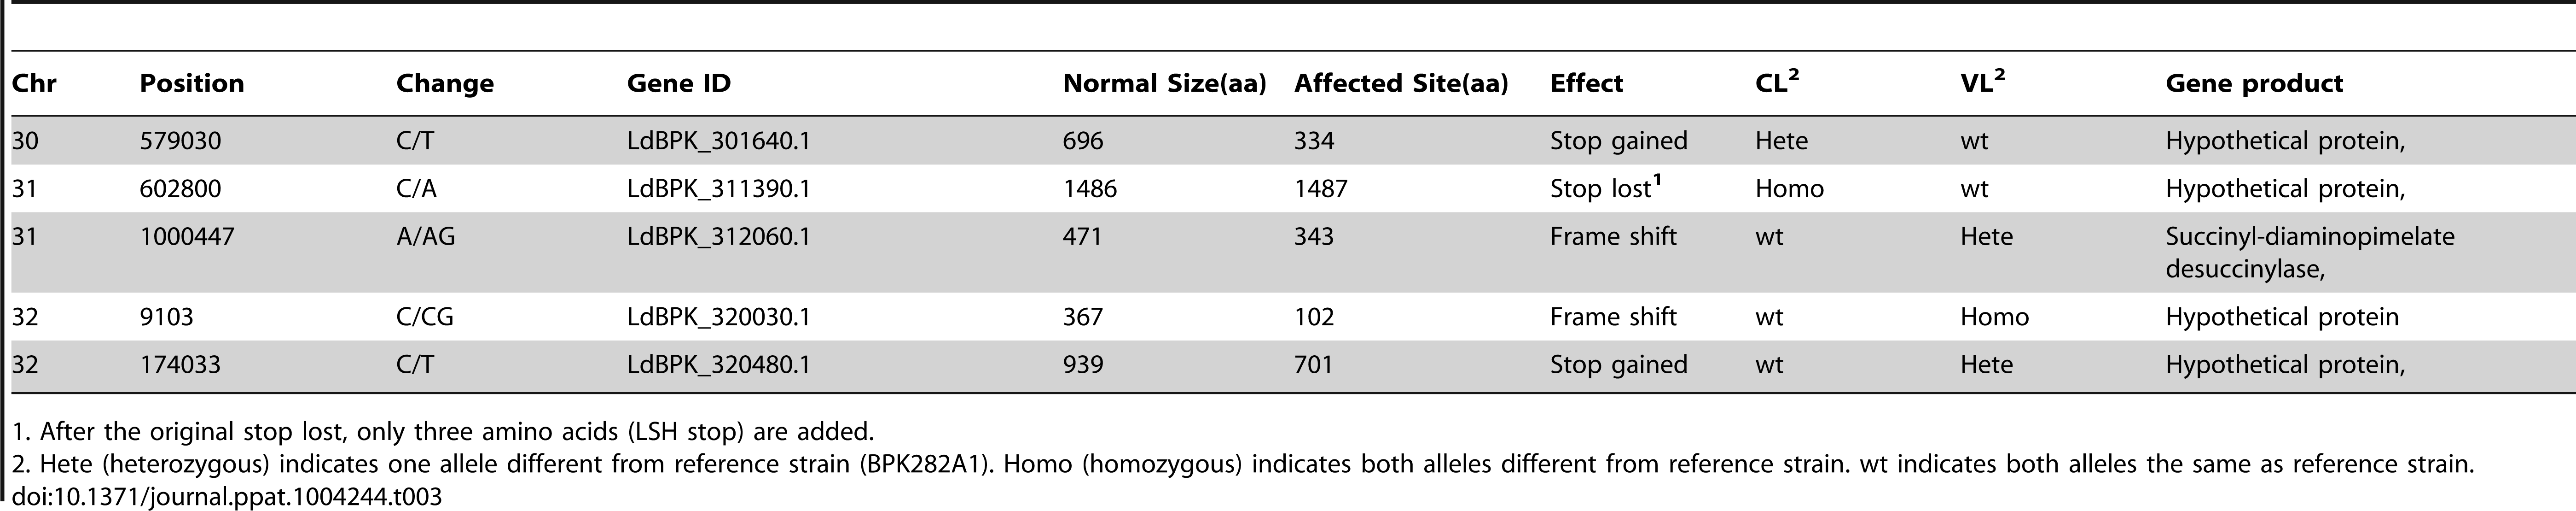 Genes unequally affected in the CL and VL isolates by frame shift or stop site change.